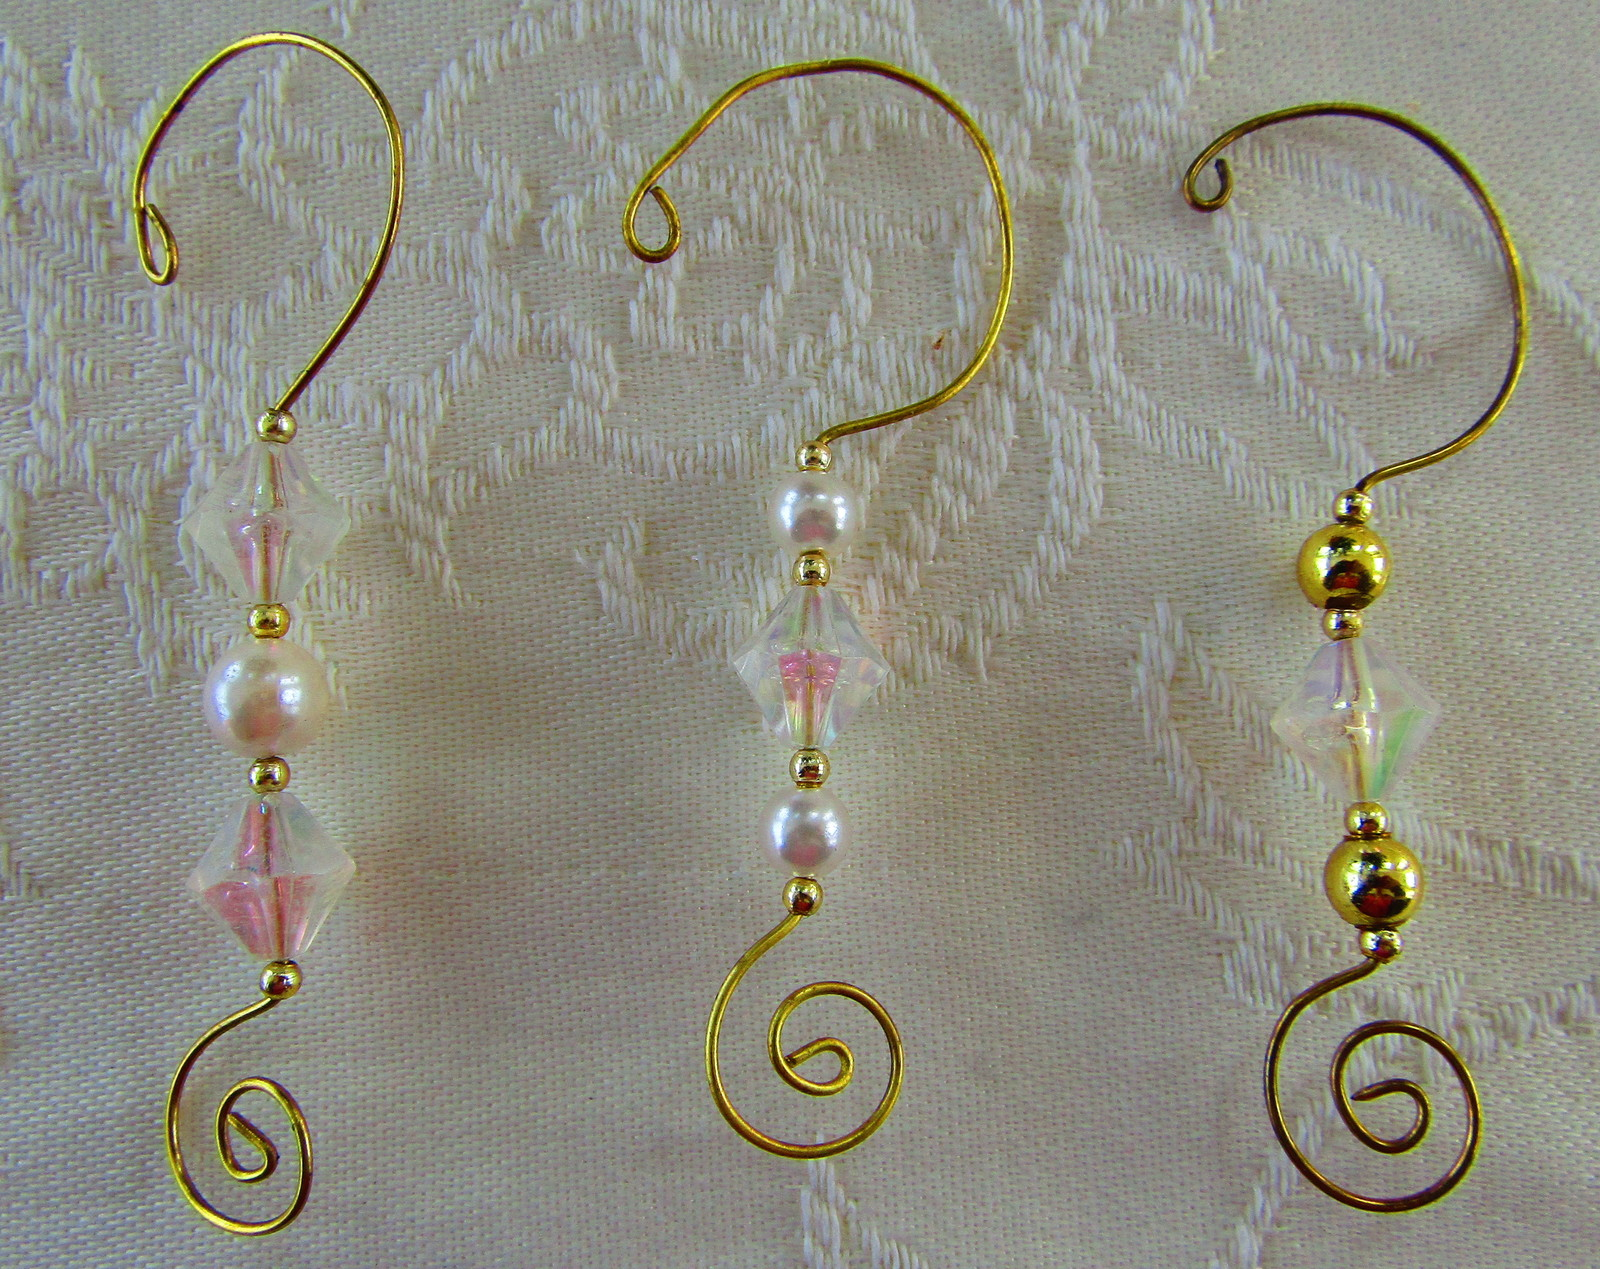 Ornament Hooks, Elegant Irridescent/Gold/Pearl Beads & Swirl Pattern, Set of 12